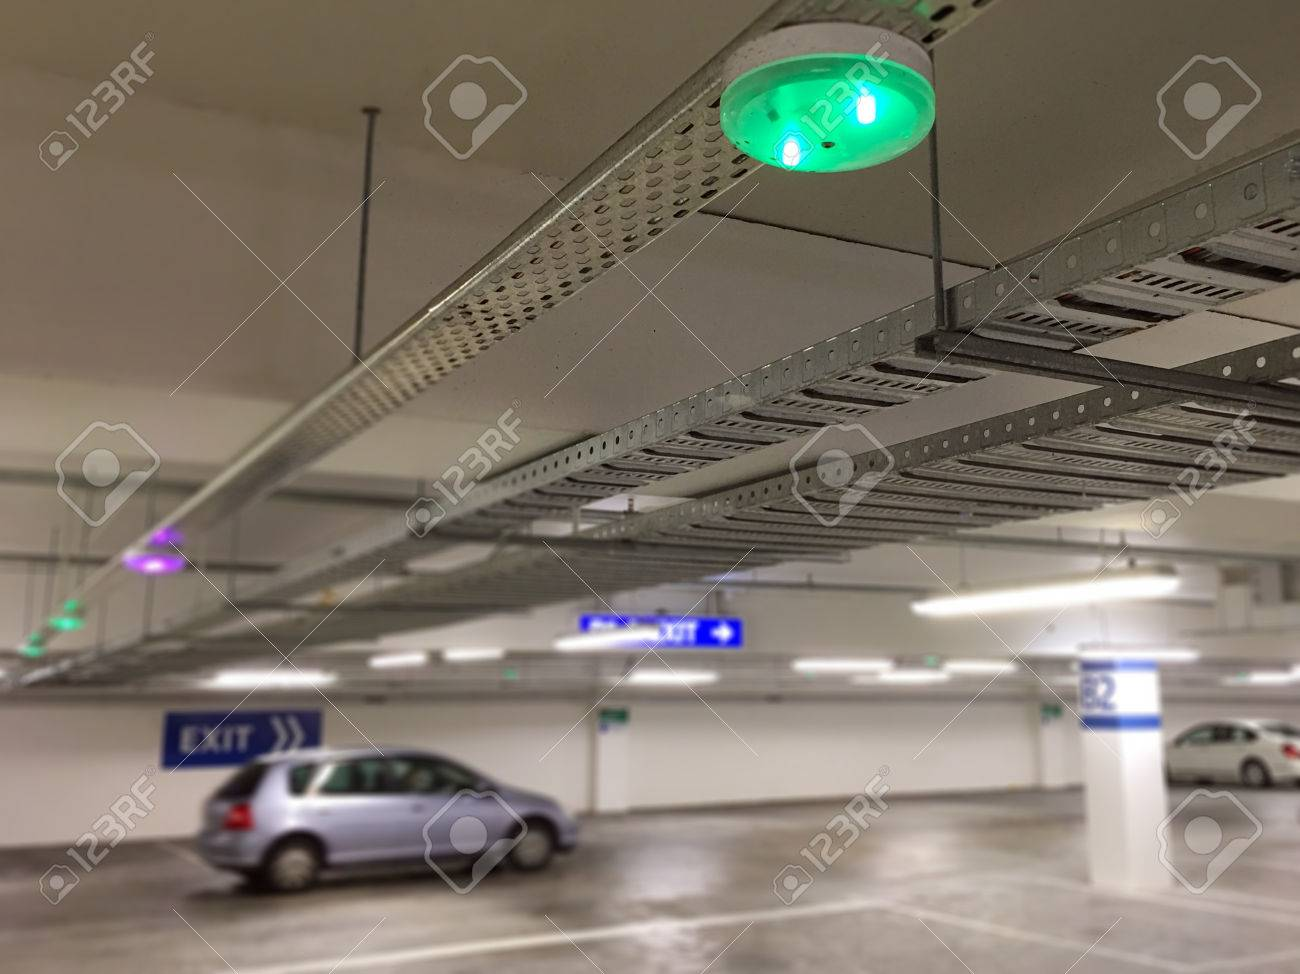 Car parking lot sensors on ceiling indicator light show parking car parking lot sensors on ceiling indicator light show parking space unoccupied is green stock aloadofball Gallery